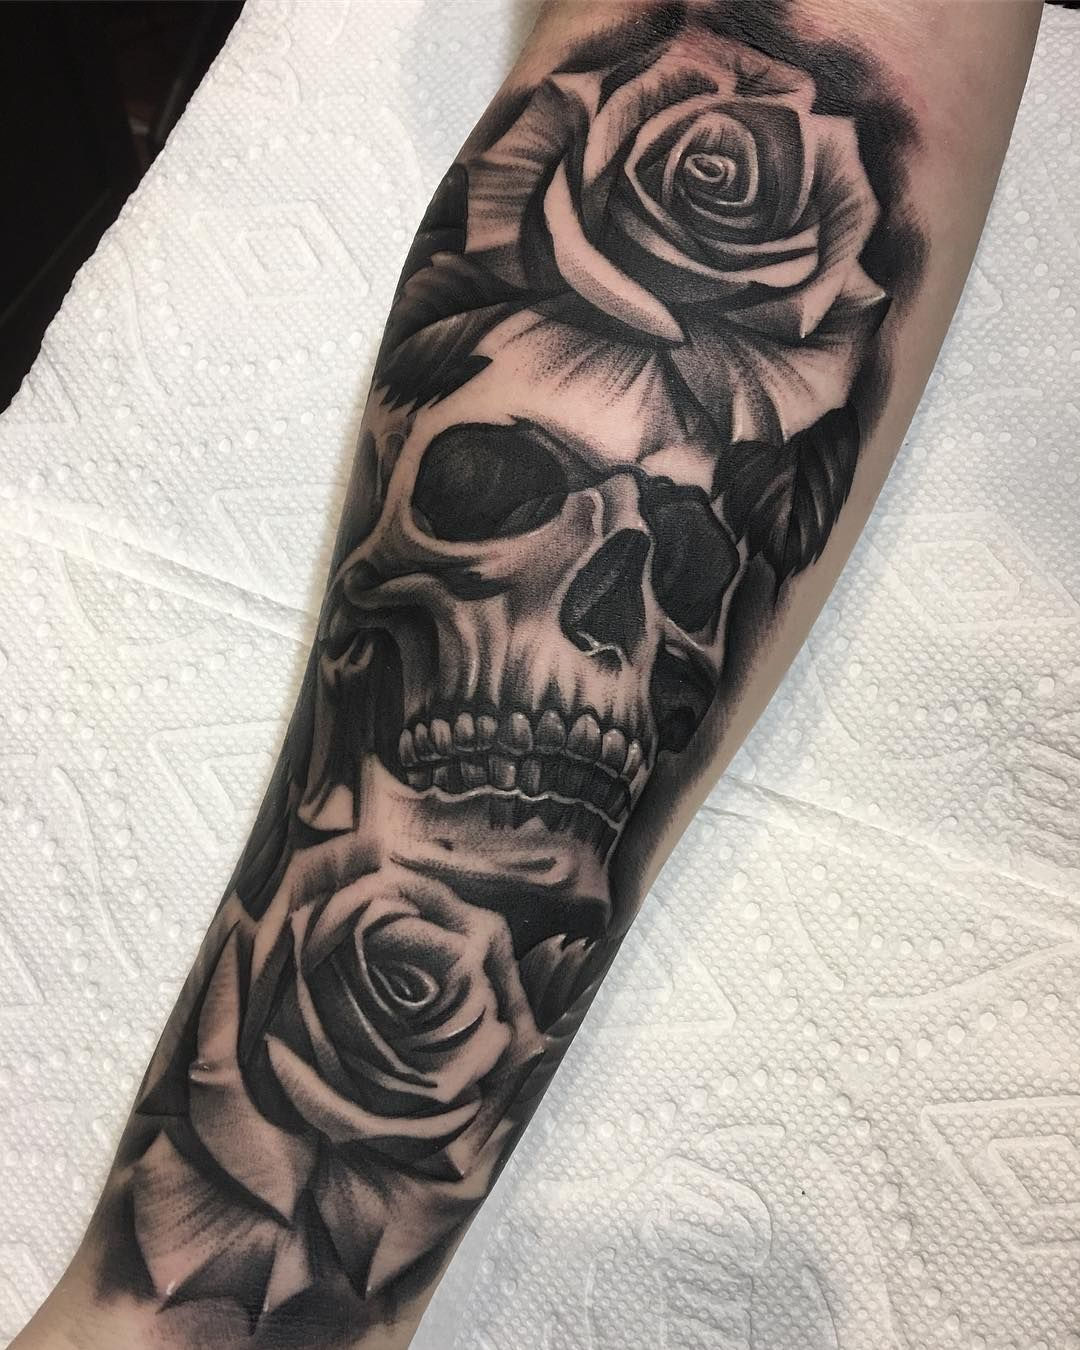 Skulls And Roses Are Always Funnnnn Undertheguntattoo Tattoo Art